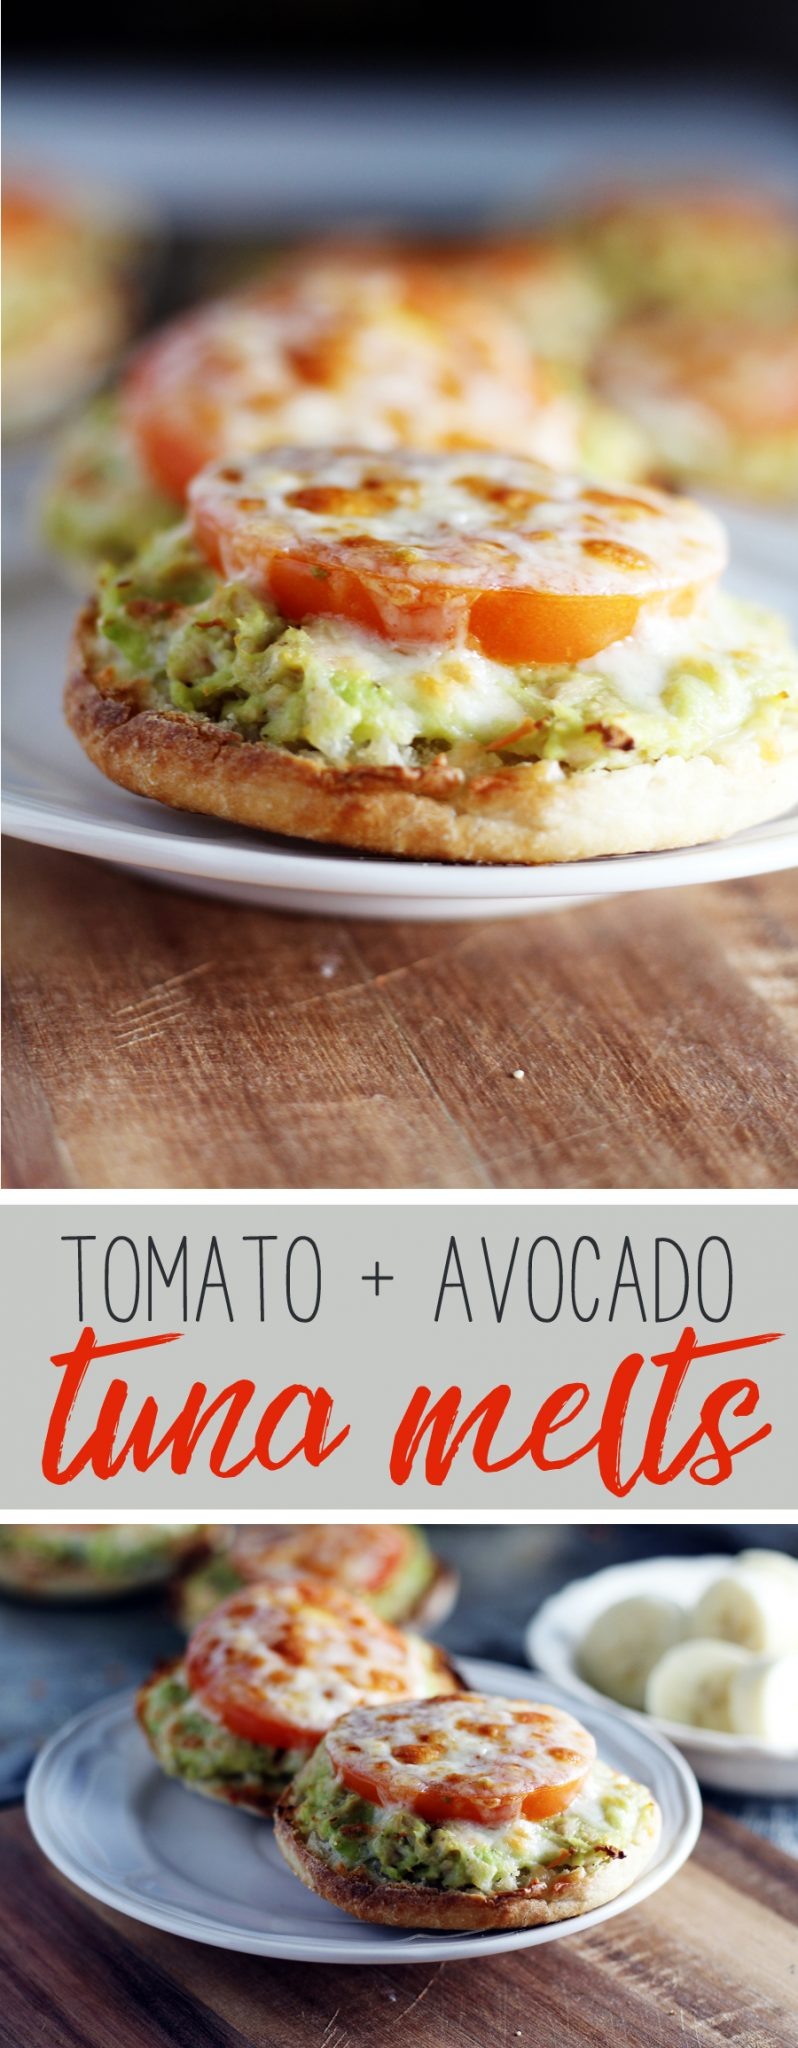 Fast + easy Tomato Avocado Tuna Melt. Made with fresh avocado, wild albaore,  tomato and cheese, this recipe is perfect for lunch or a light dinner. #BlueHarbor #tunamelt